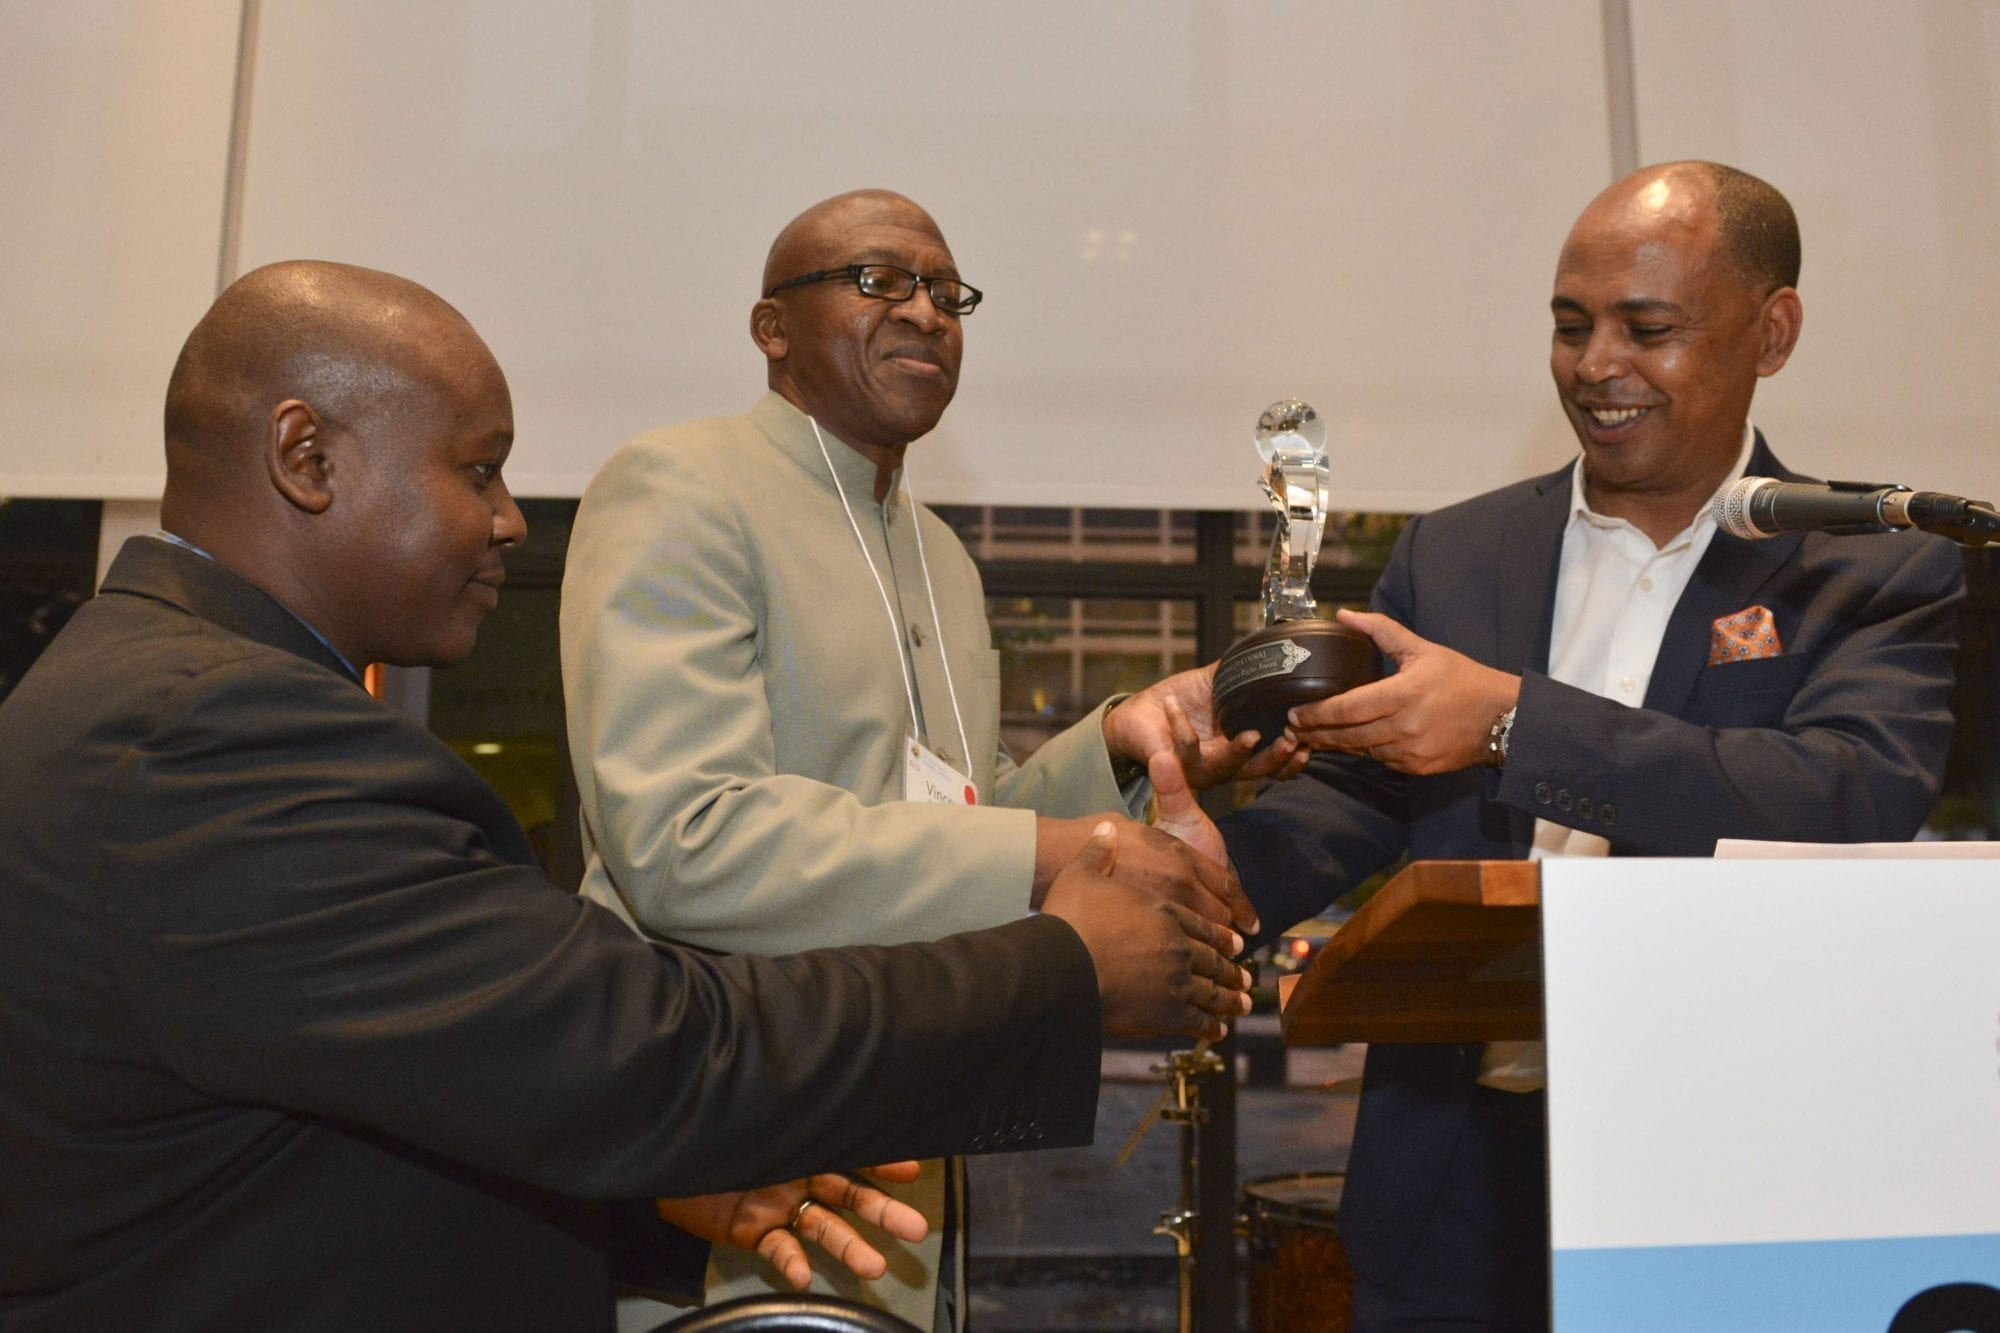 Swazi Union Receives 2015 AFL-CIO Human Rights Award